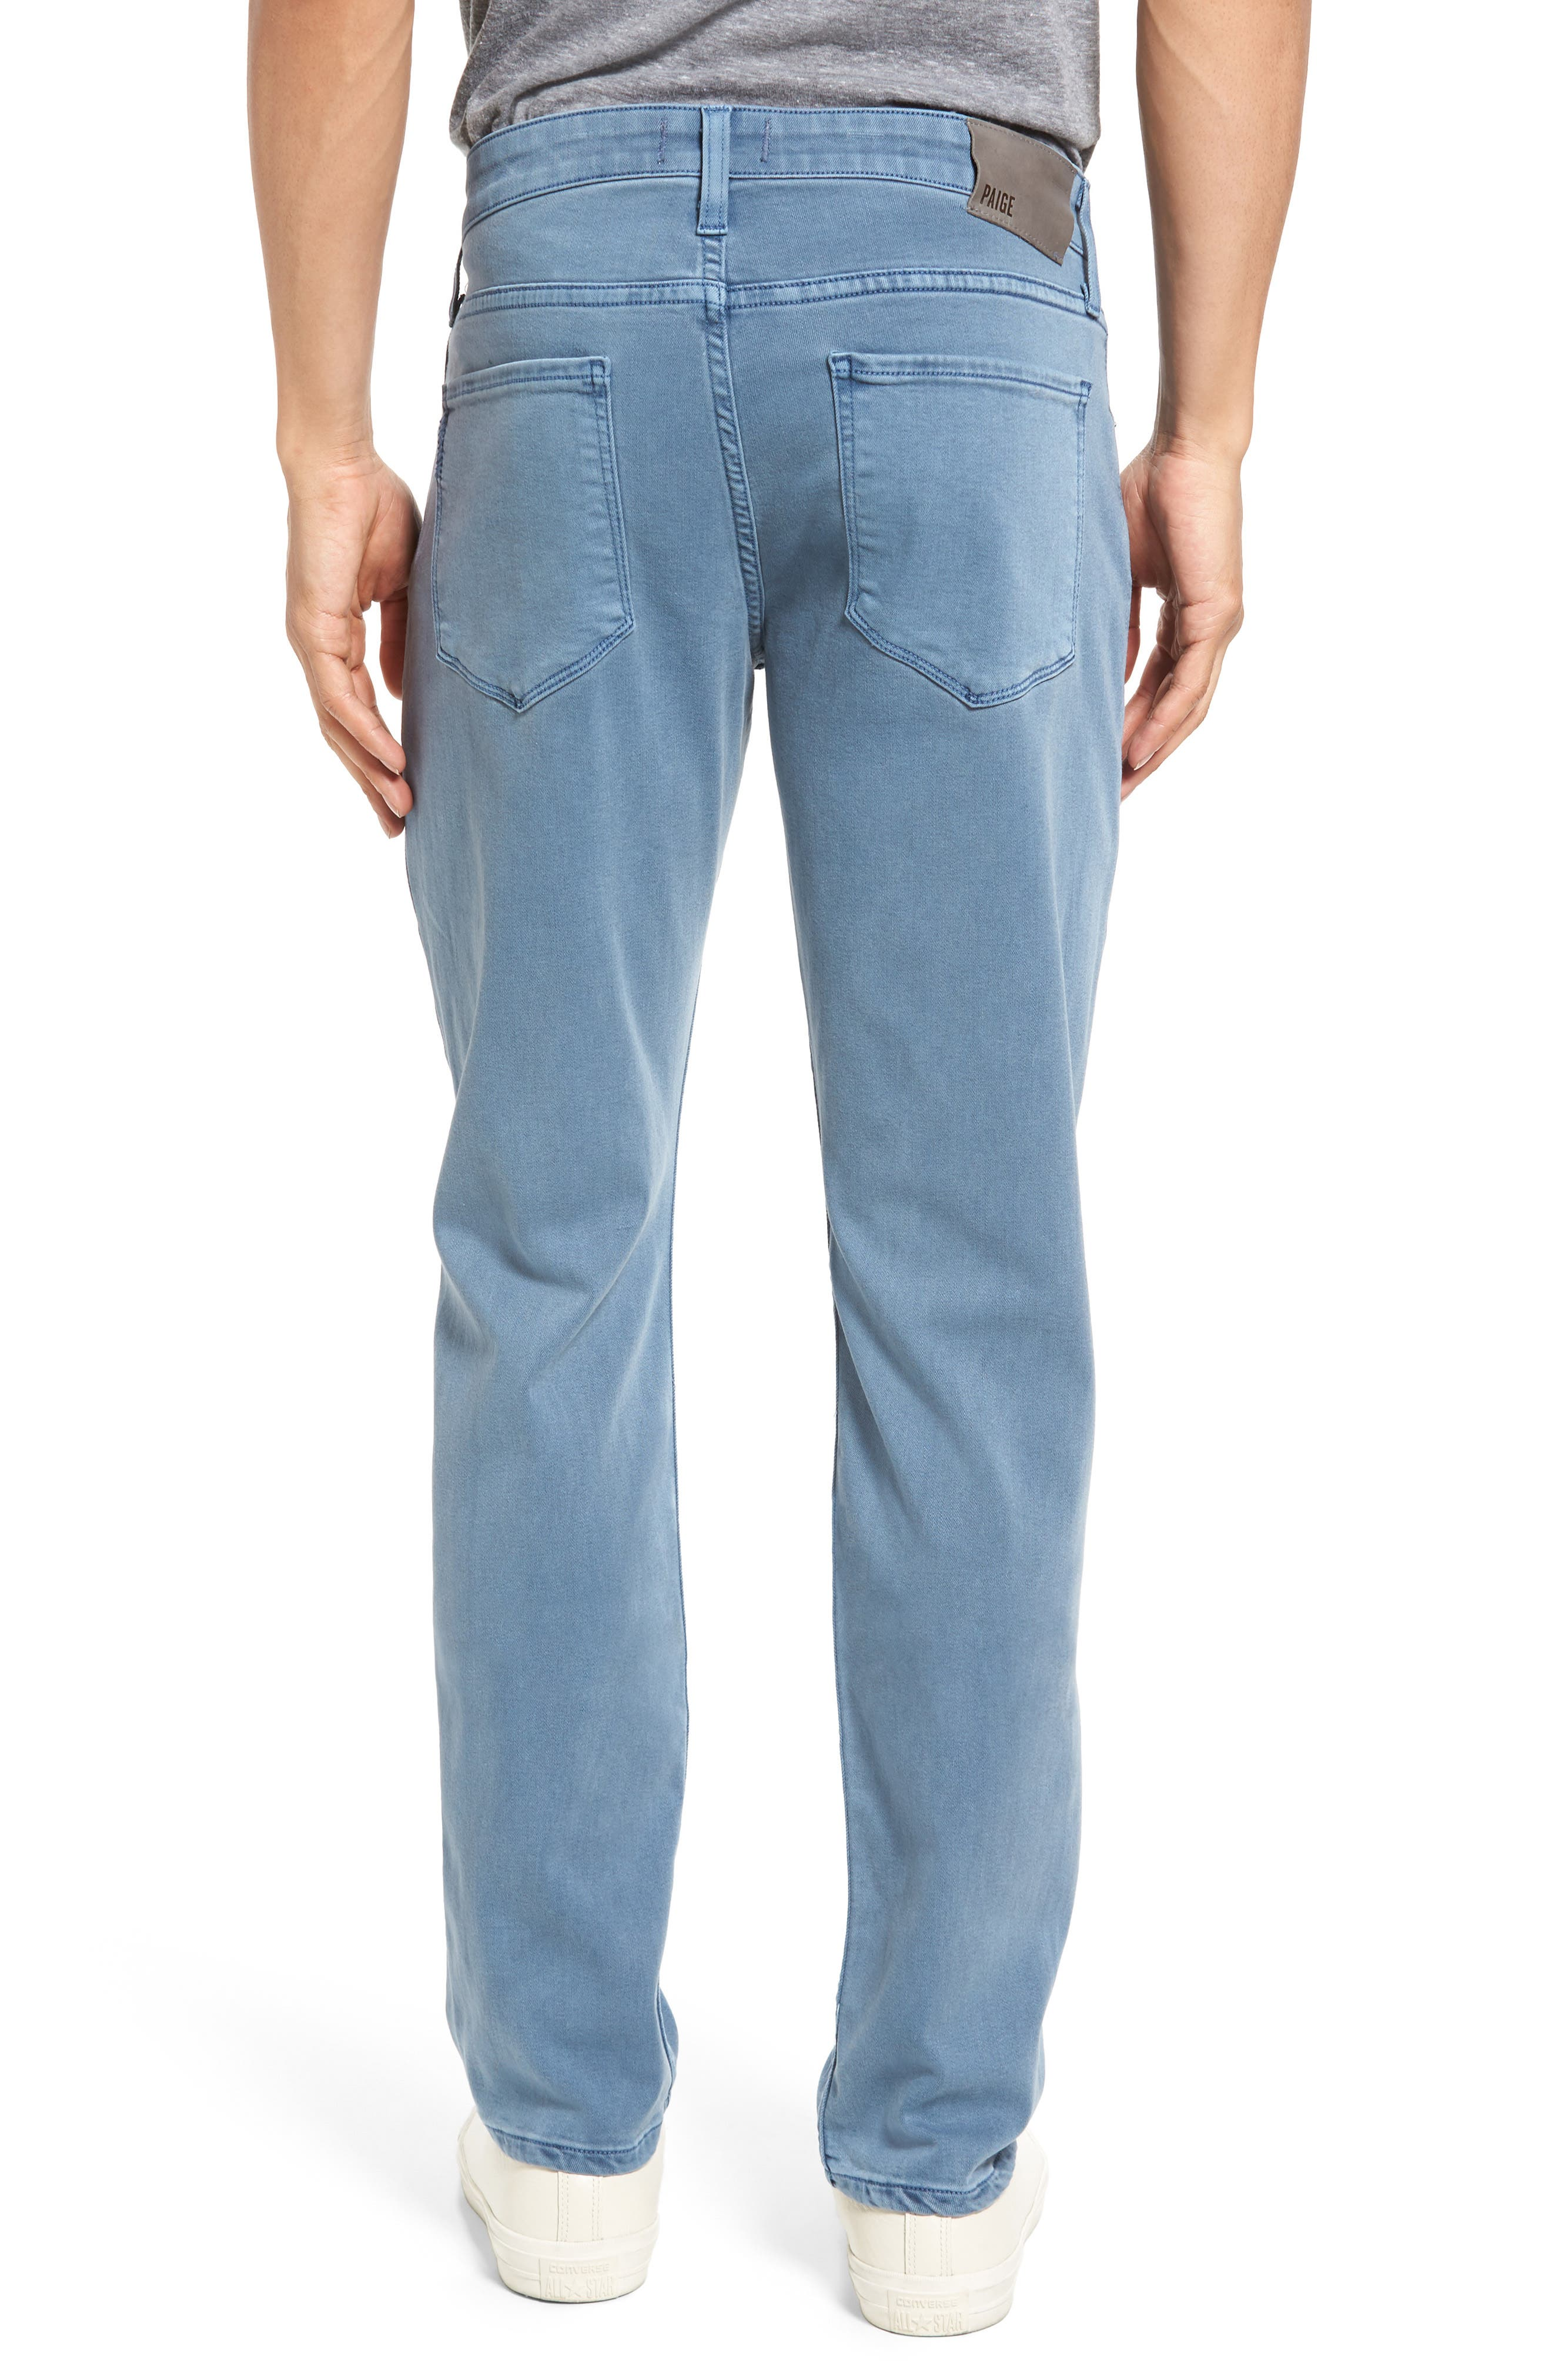 Transcend - Lennox Slim Fit Jeans,                             Alternate thumbnail 2, color,                             Seascape